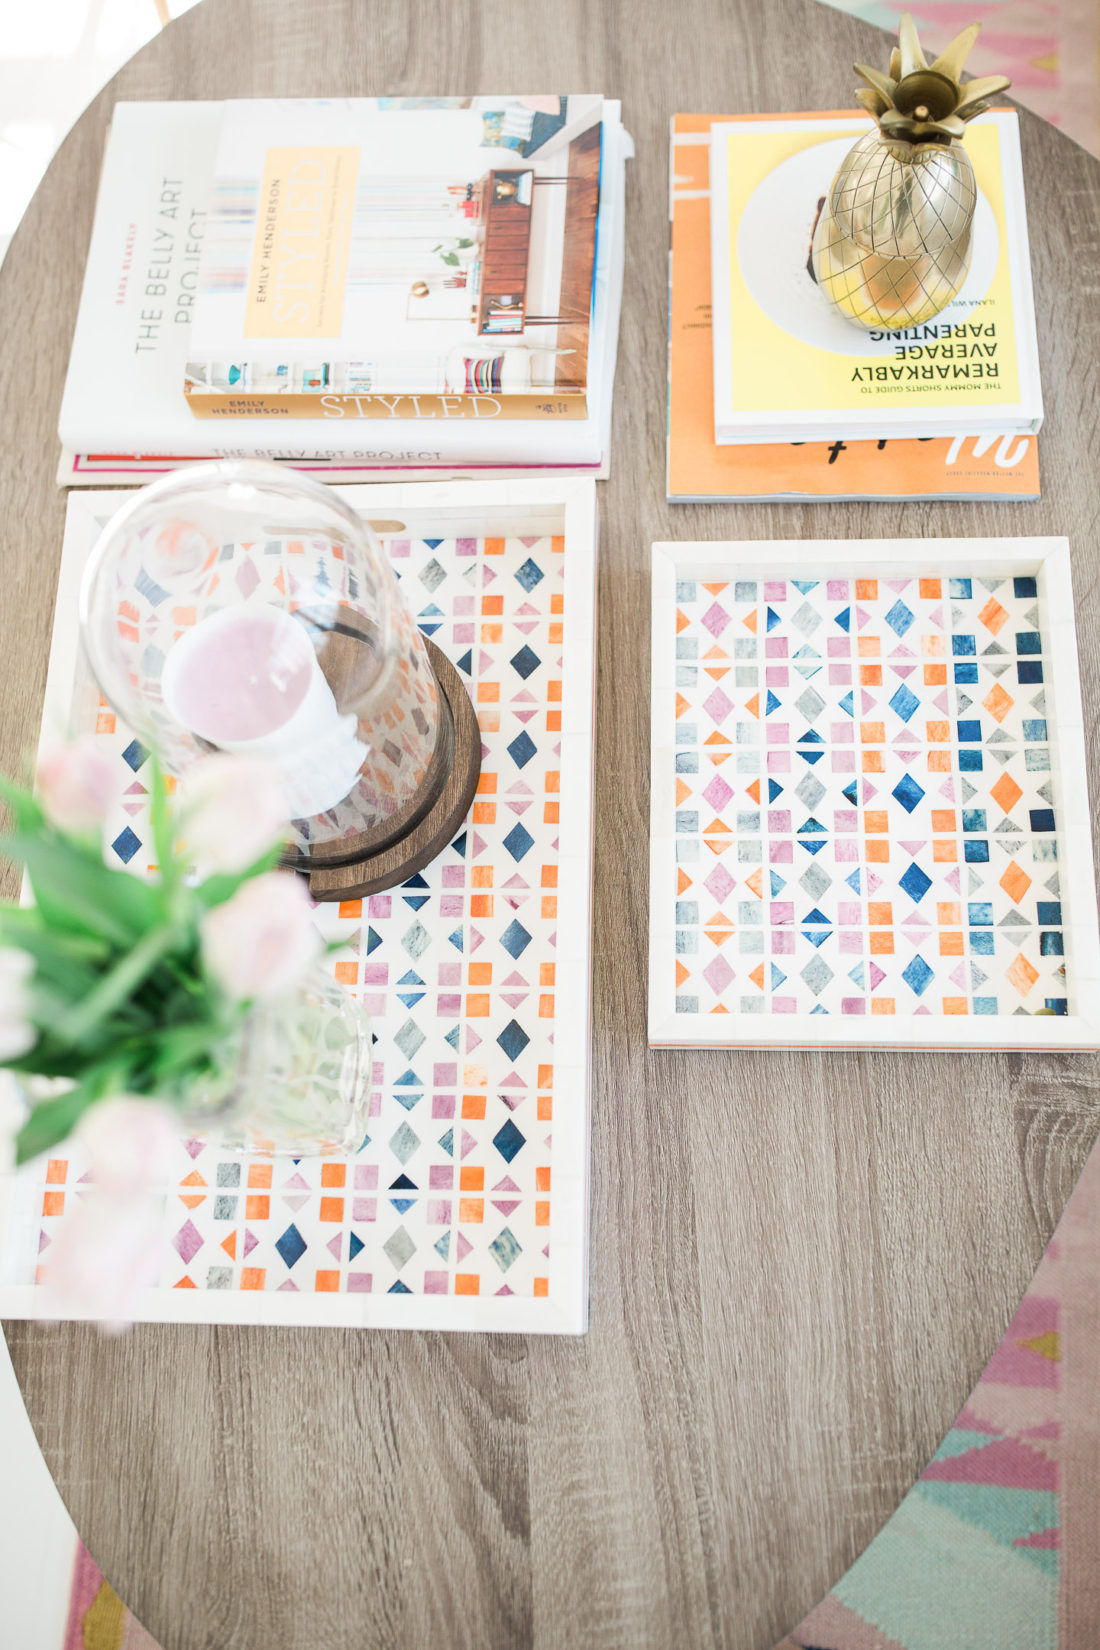 Multicolored decorative trays and stacks of books adorn the coffee table in the Happily Eva After studio